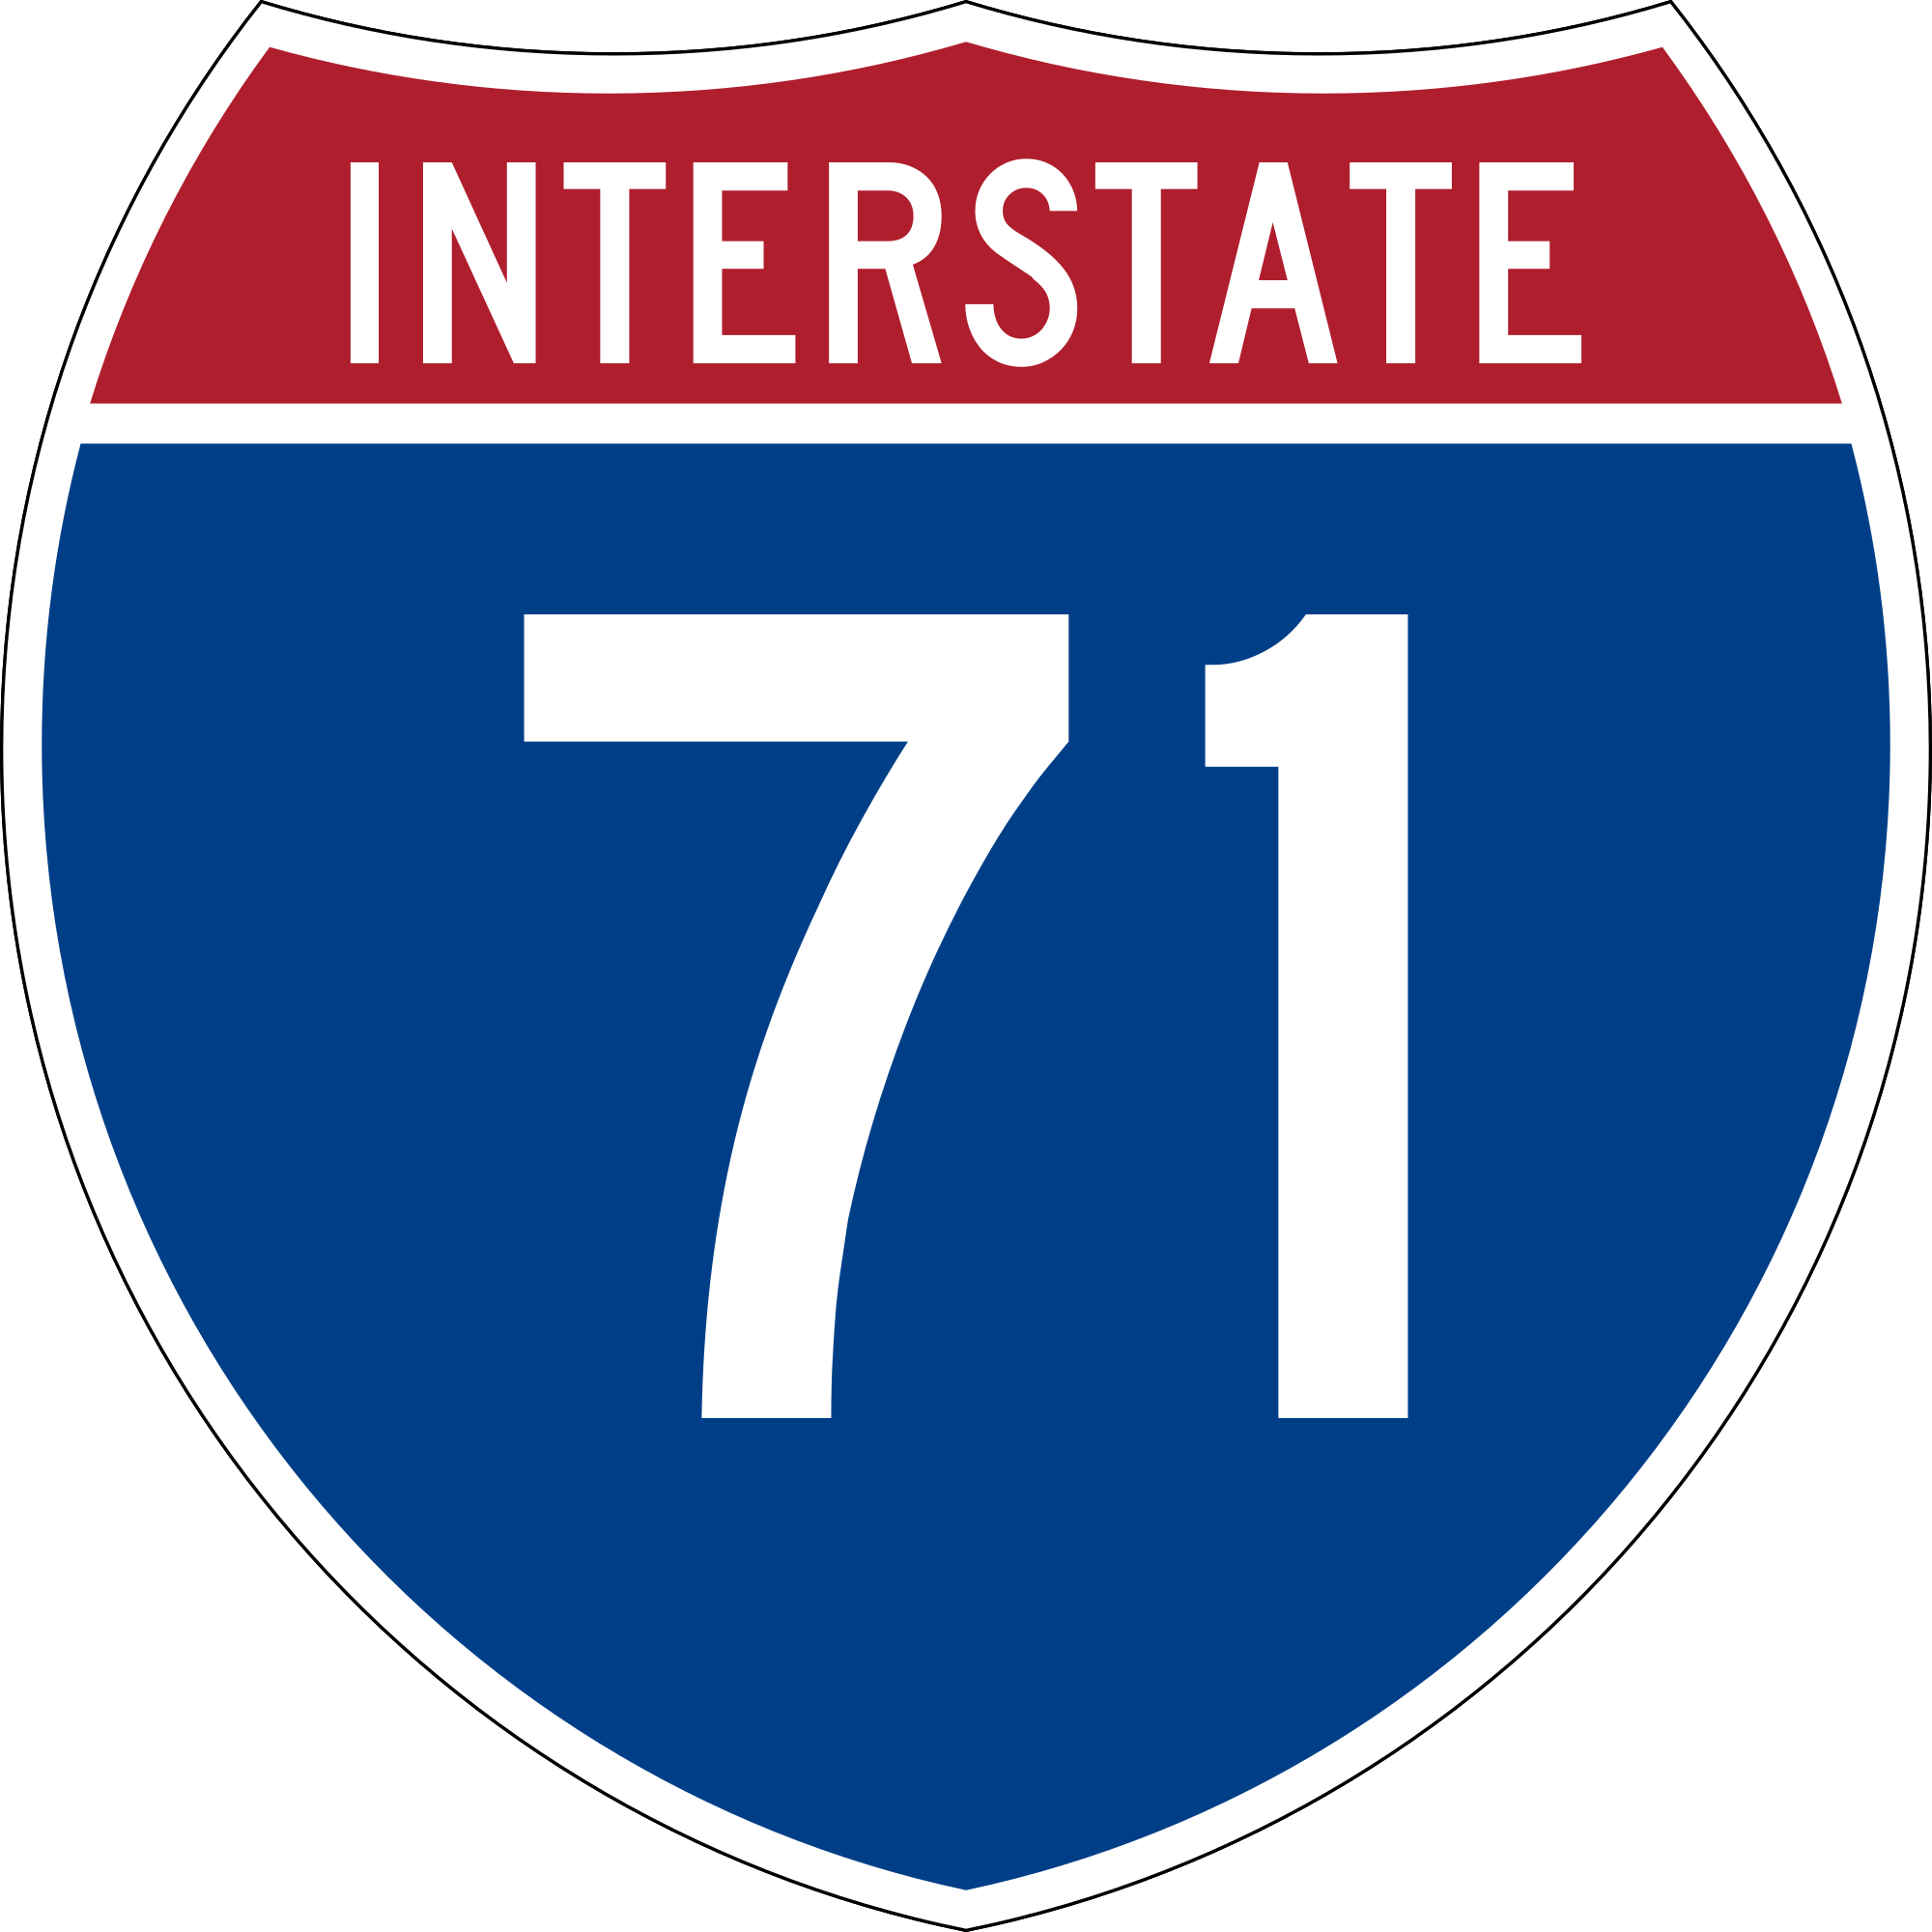 Interstate 71